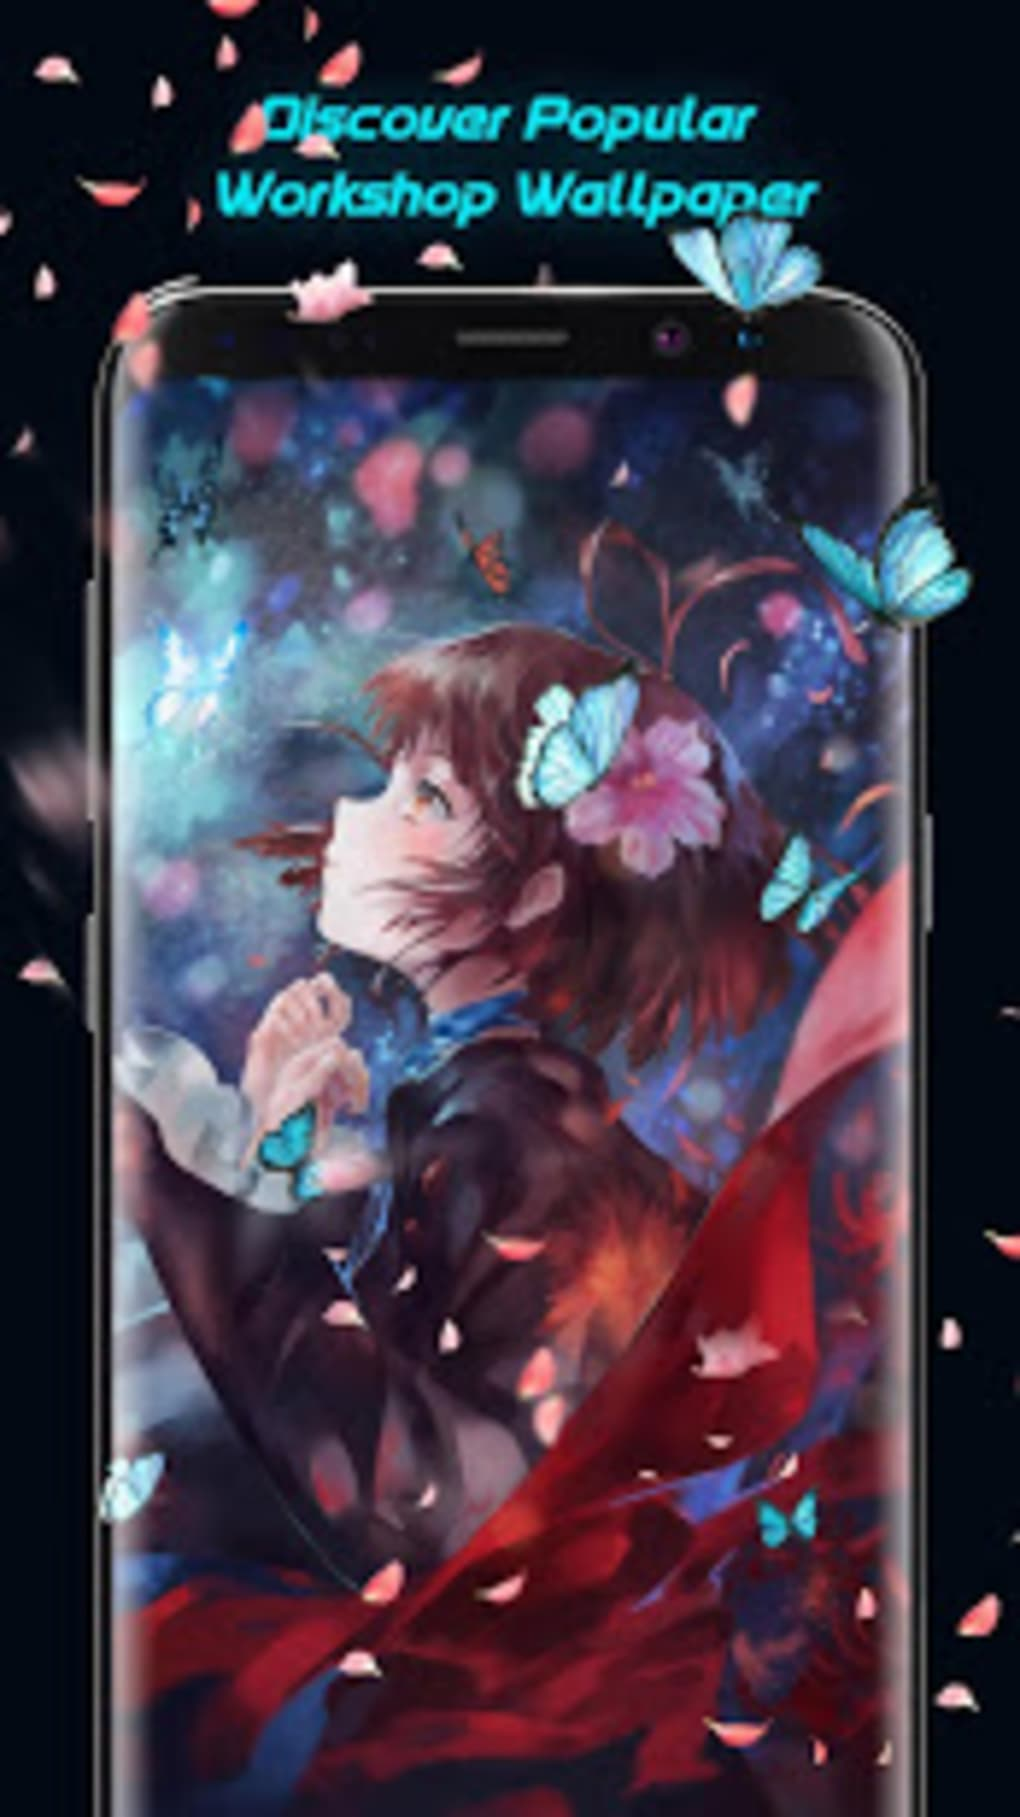 Doki Doki Animotion Anime Hd Live Wallpaper Editor Apk Para